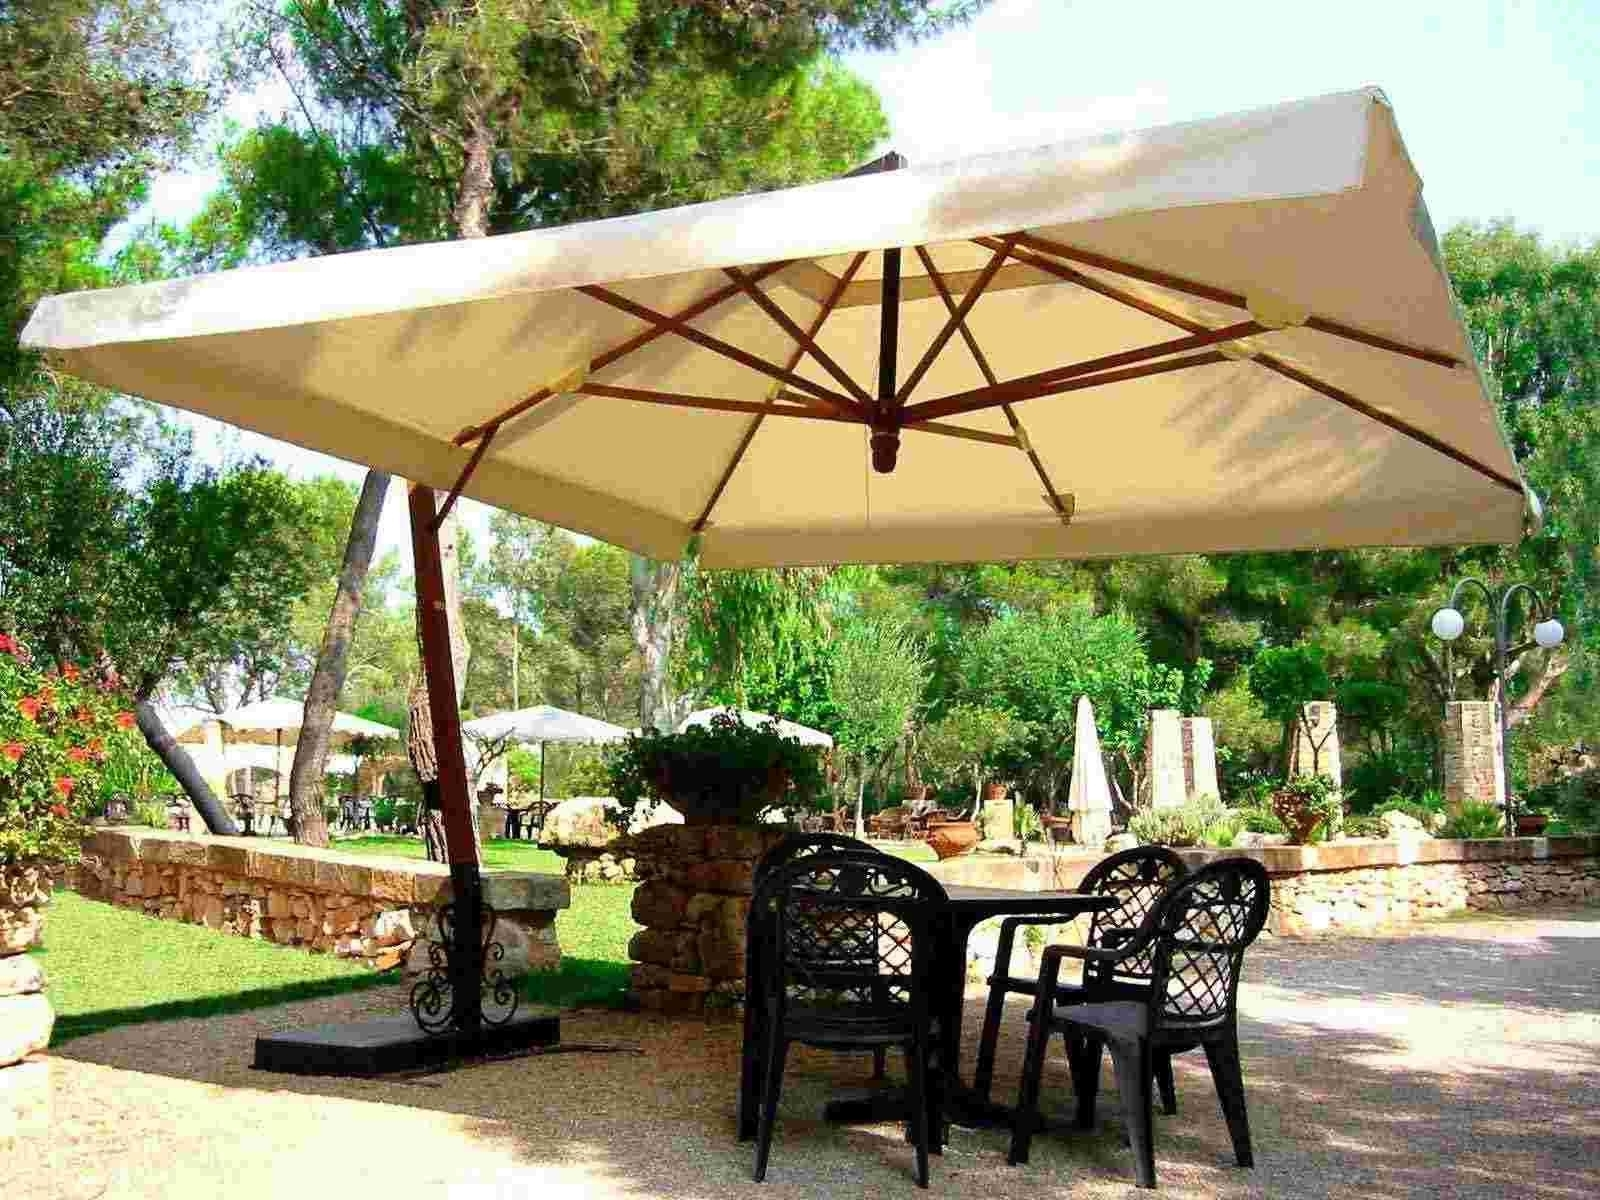 Patio Umbrellas With Table In Most Popular Patio Umbrella Clearance – Home Design Ideas (View 15 of 20)